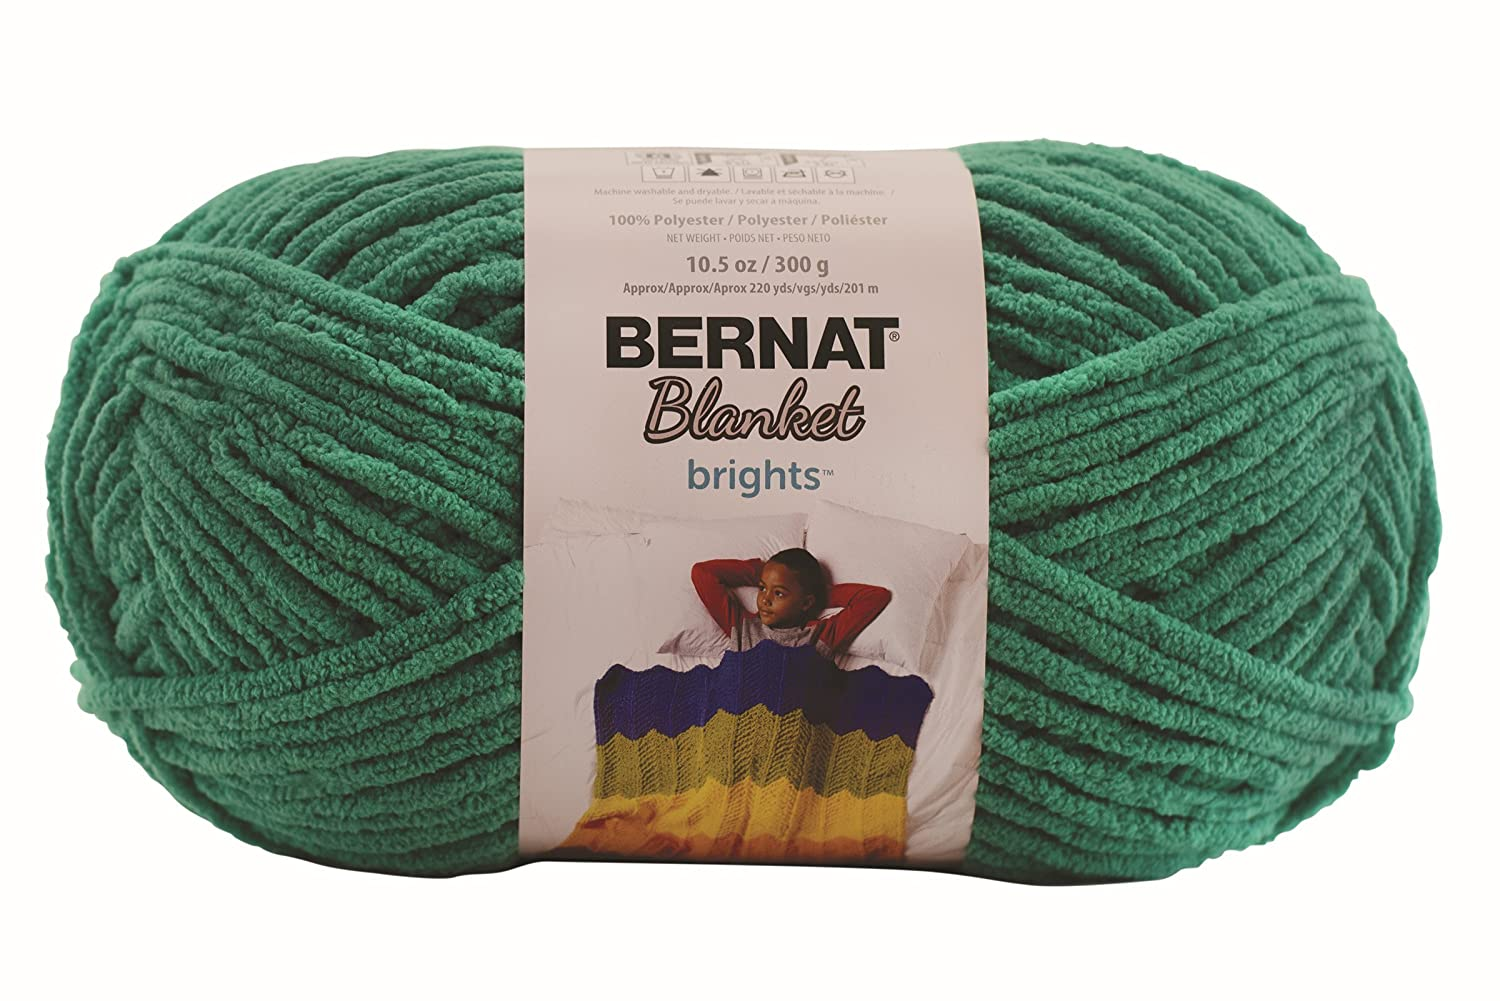 Bernat Blanket BrightsYarn - (6) Super Bulky Gauge - 10.5 oz - Busy Blue - Machine Wash & Dry 16121212005